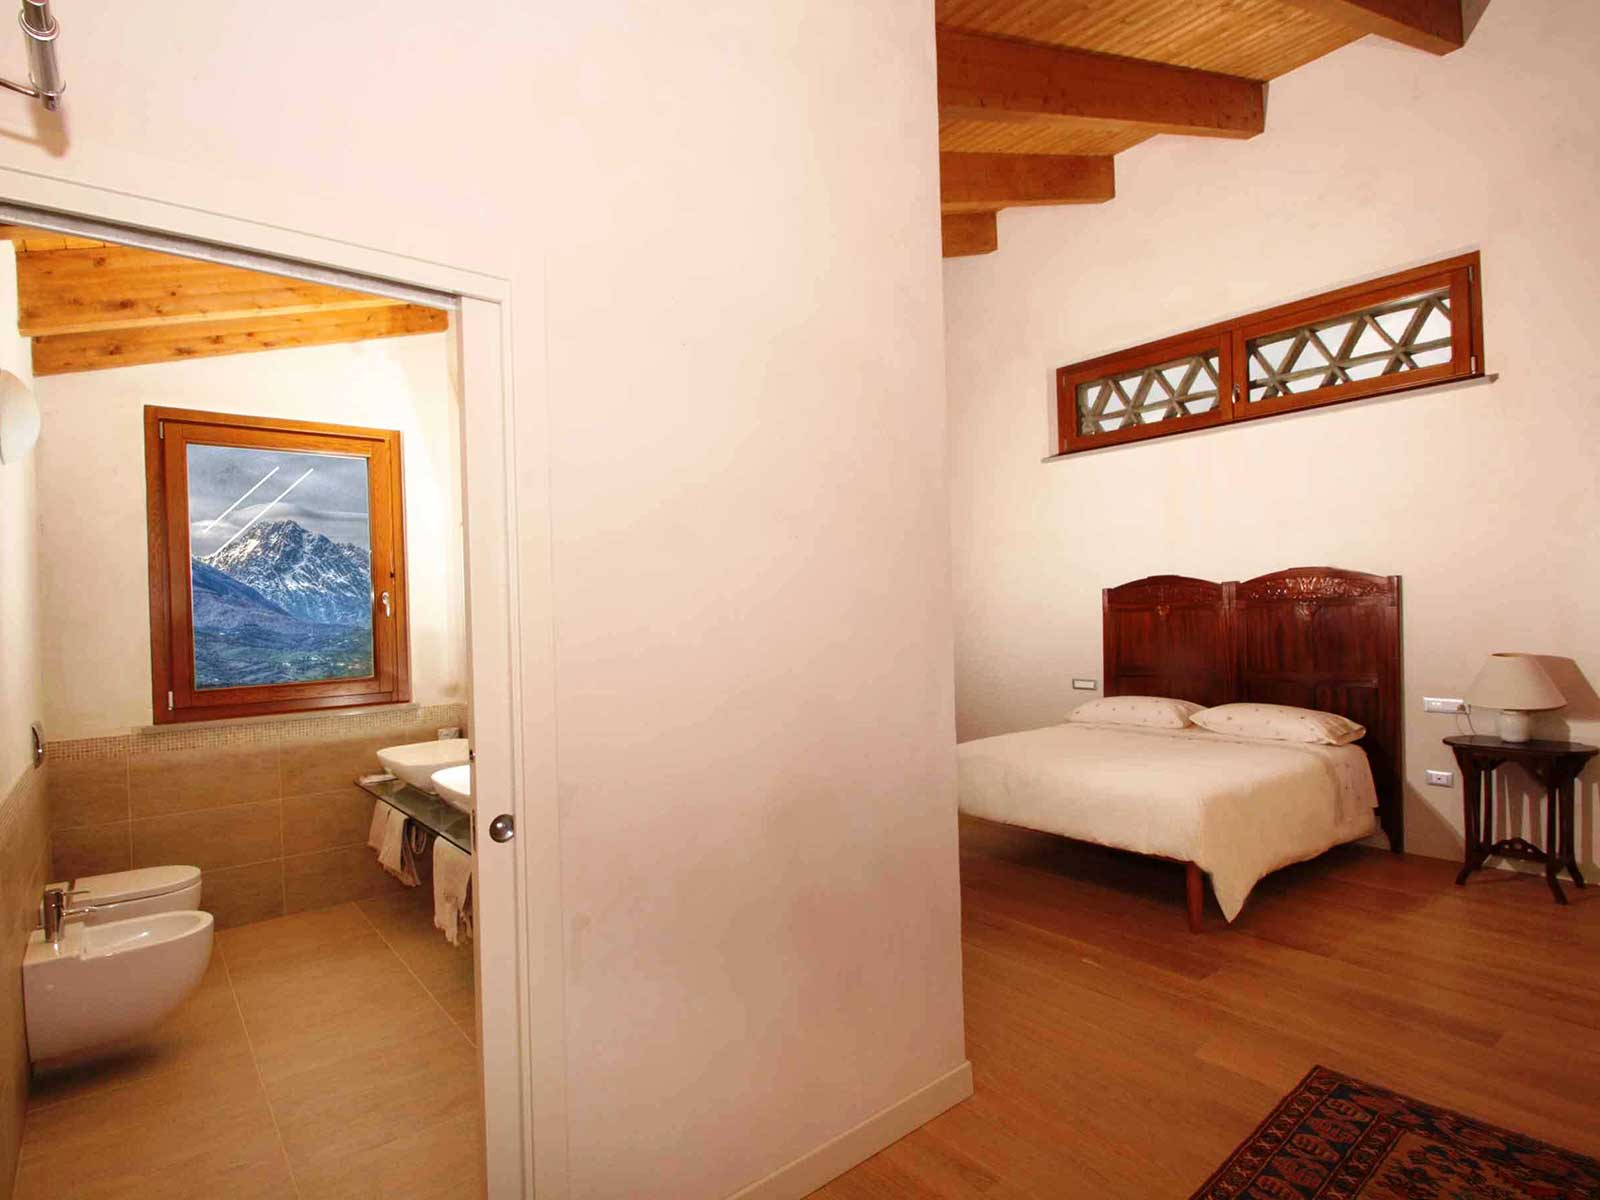 Country Houses Country Houses for sale Penne (PE), Casa Cignale - Penne - EUR 0 90